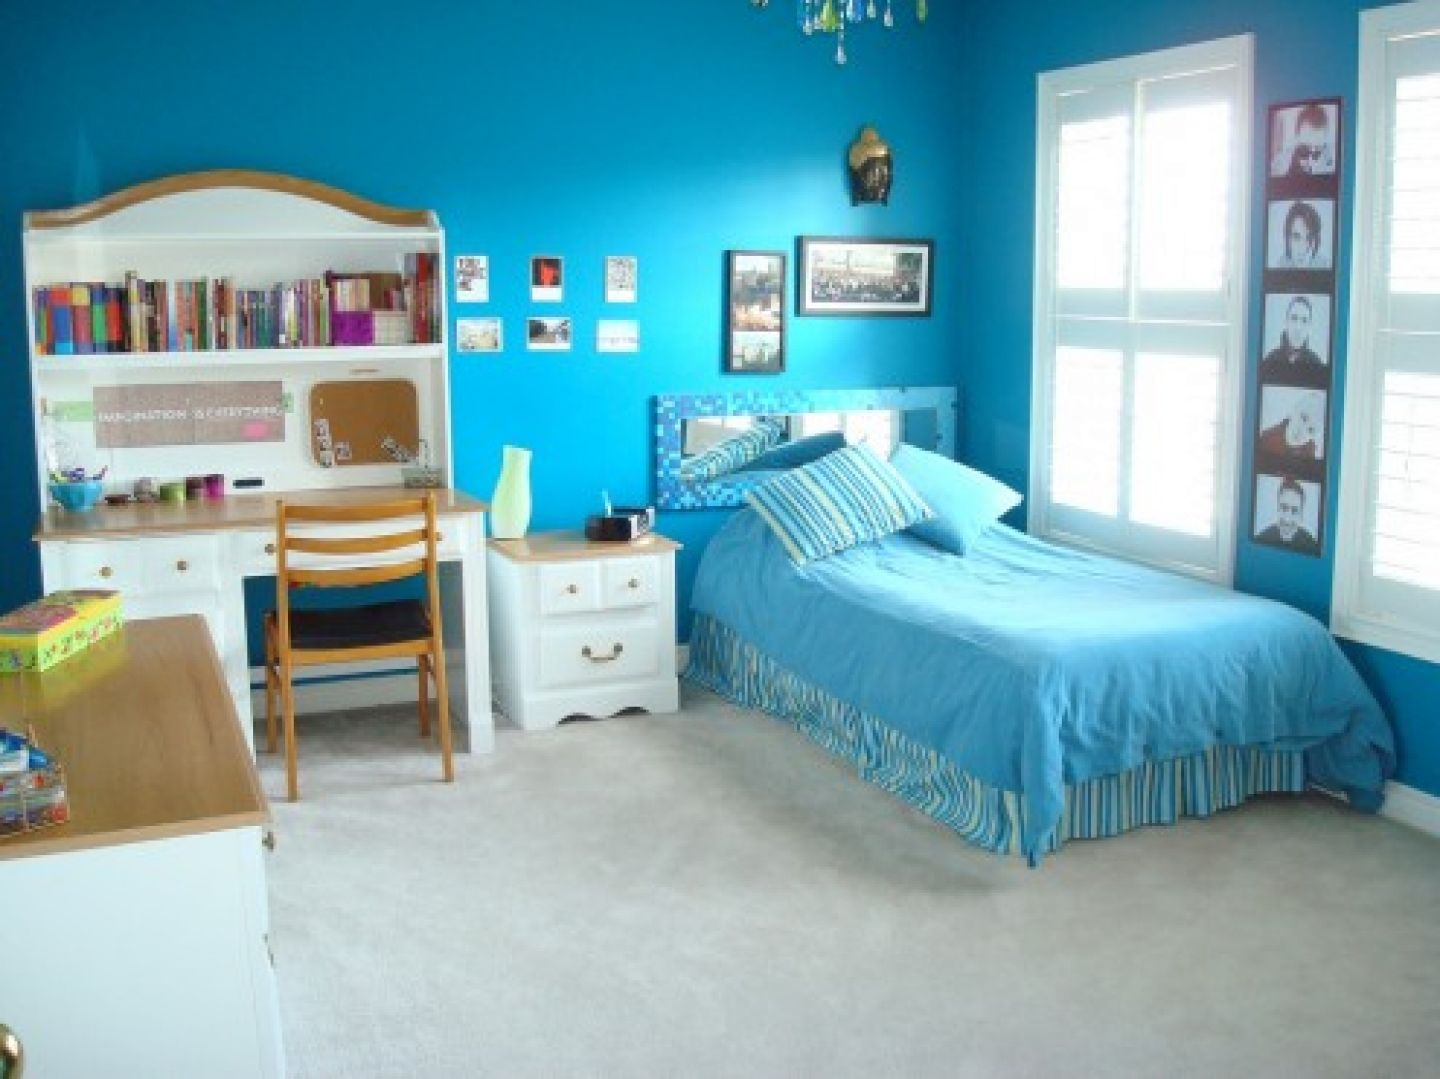 Bedroom design ideas for teenage girls 2016 - Awesome Teen Girl Bedroom Decorating Ideas With Blue Bedding